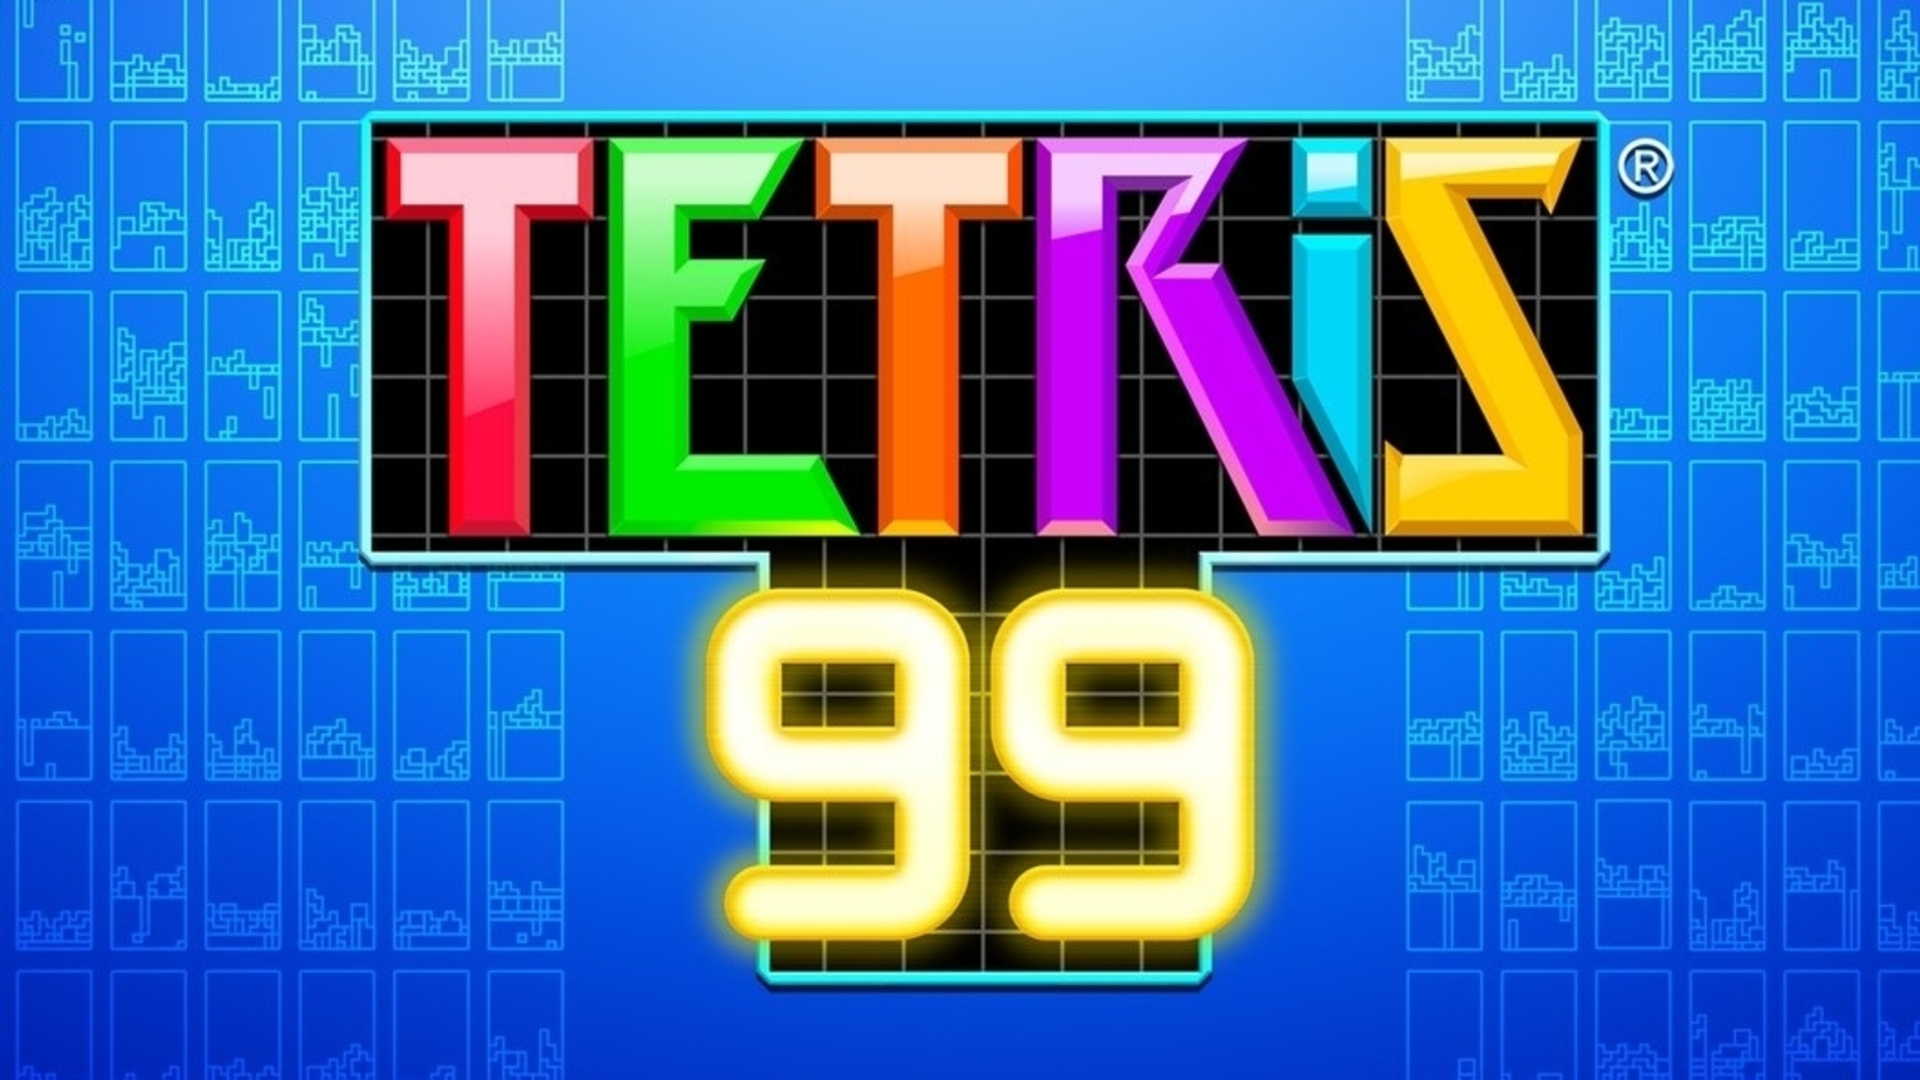 Tetris 99 Is Amazingly The Newest And Freshest Battle Royale On Block T Spinning Its Way Into A Heated Against Likes Of Fortnite